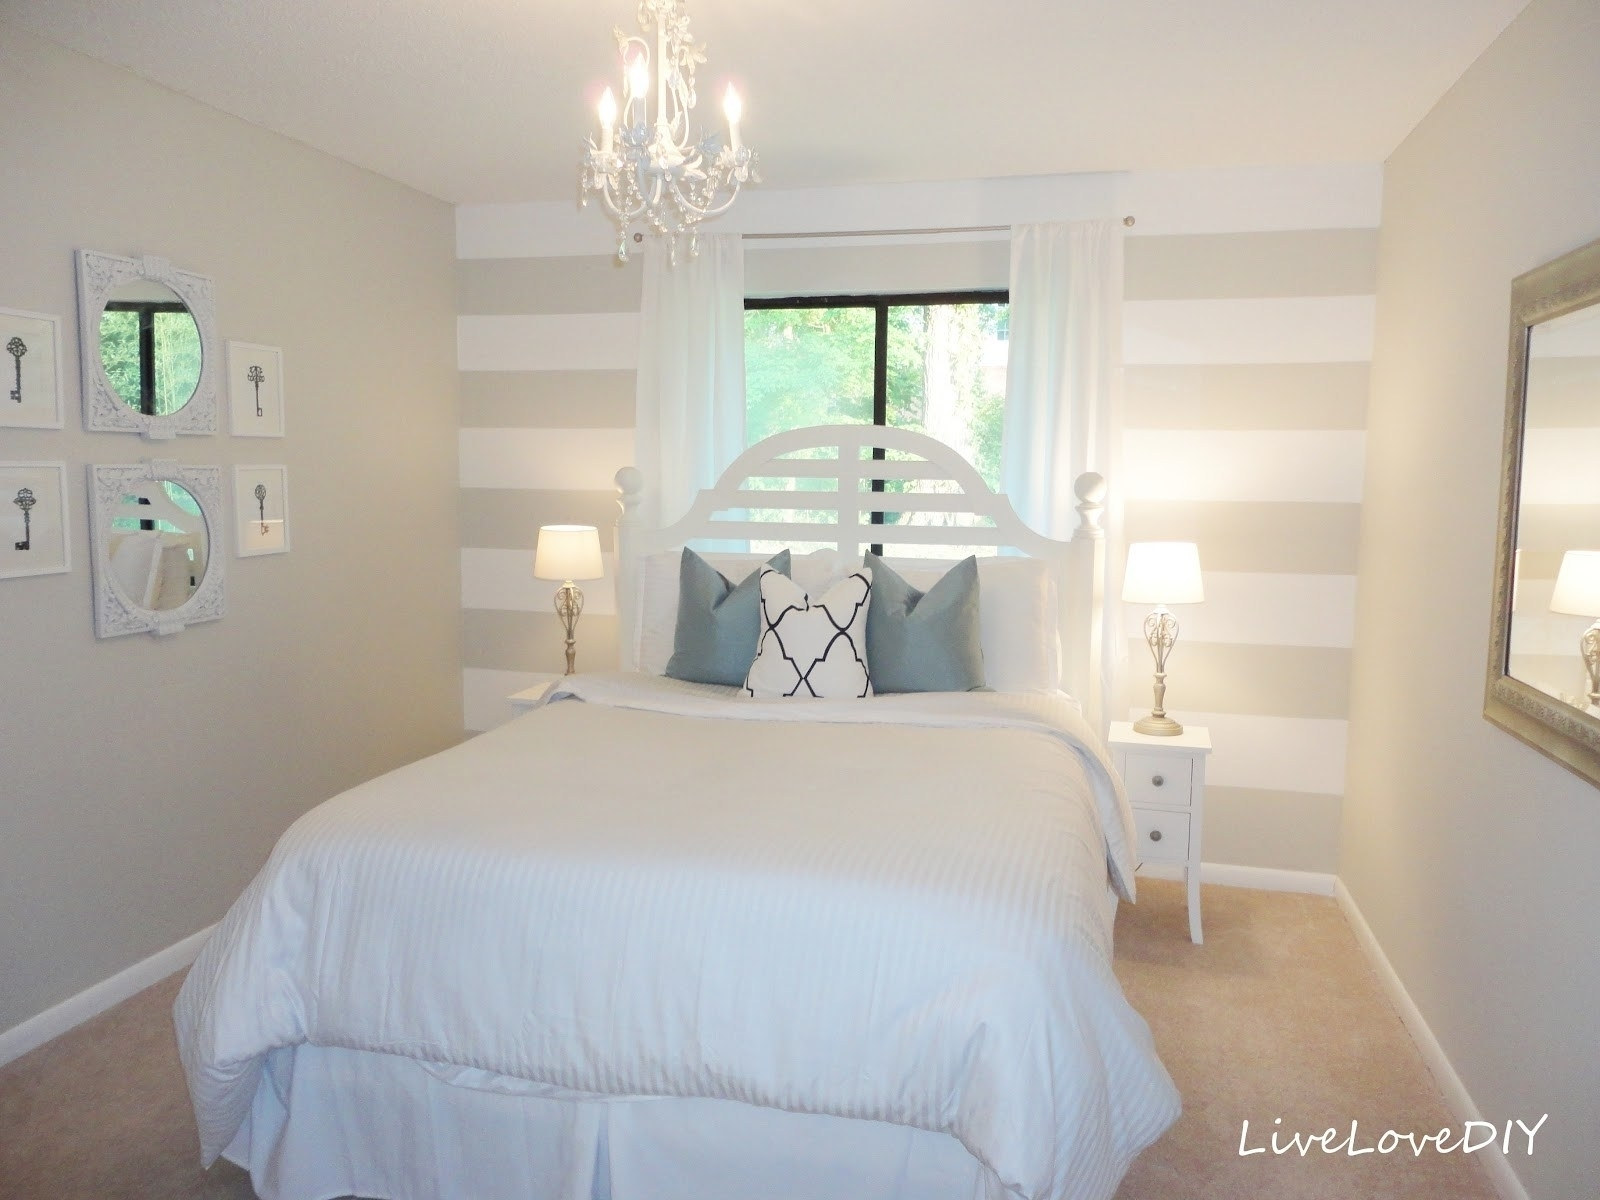 Bedroom Design: White Wood Accent Wall Fireplace Accent Wall Pertaining To Newest Wallpaper Wall Accents (View 5 of 15)